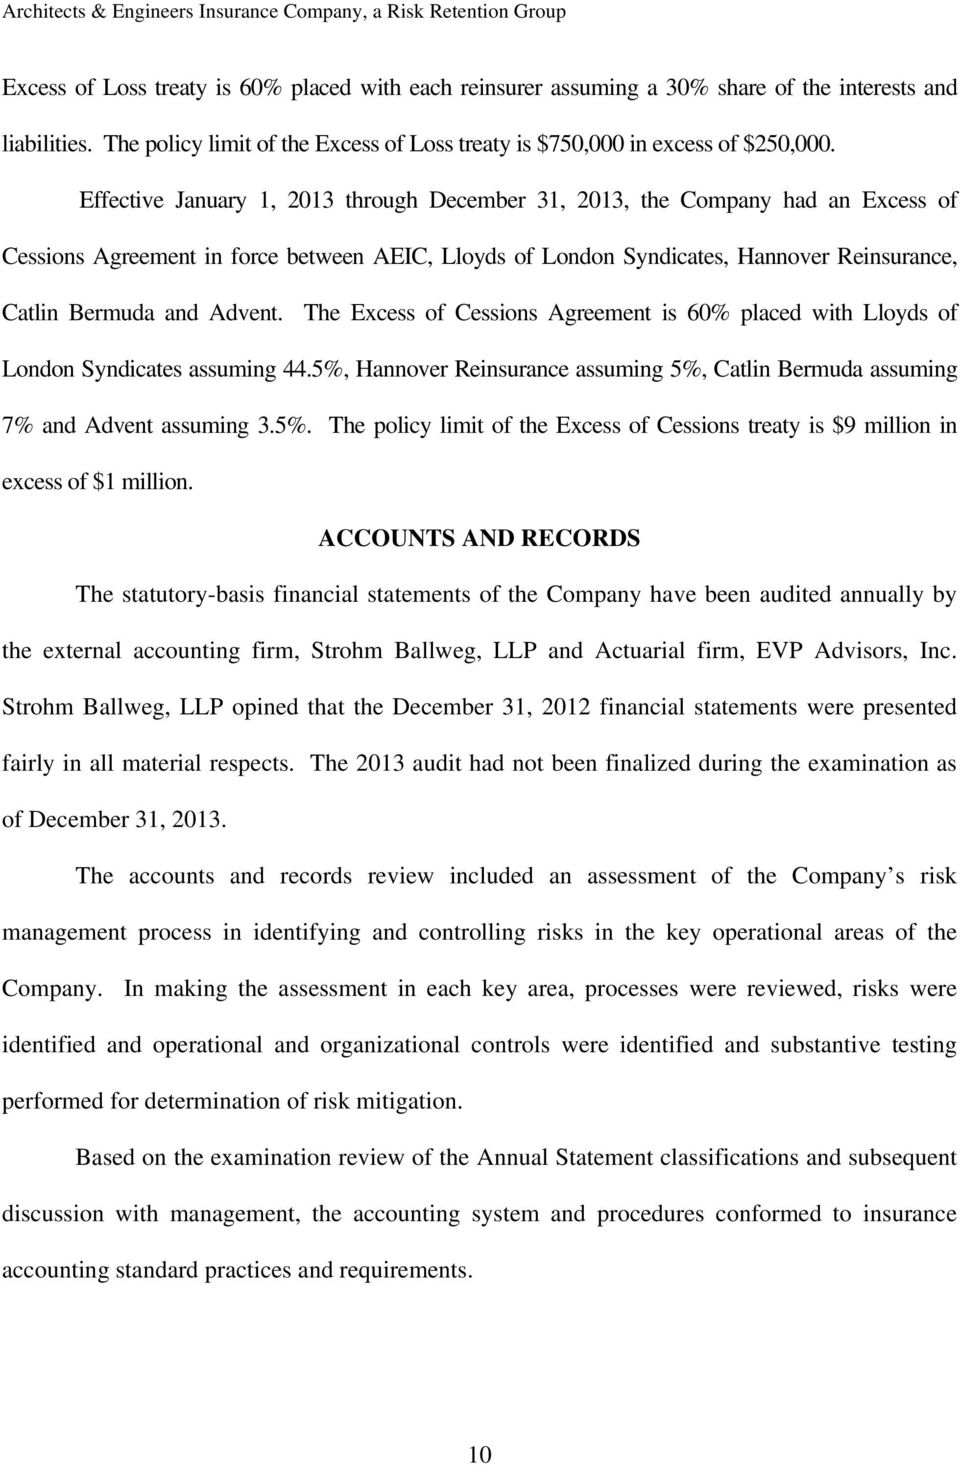 Advent. The Excess of Cessions Agreement is 60% placed with Lloyds of London Syndicates assuming 44.5%, Hannover Reinsurance assuming 5%, Catlin Bermuda assuming 7% and Advent assuming 3.5%. The policy limit of the Excess of Cessions treaty is $9 million in excess of $1 million.